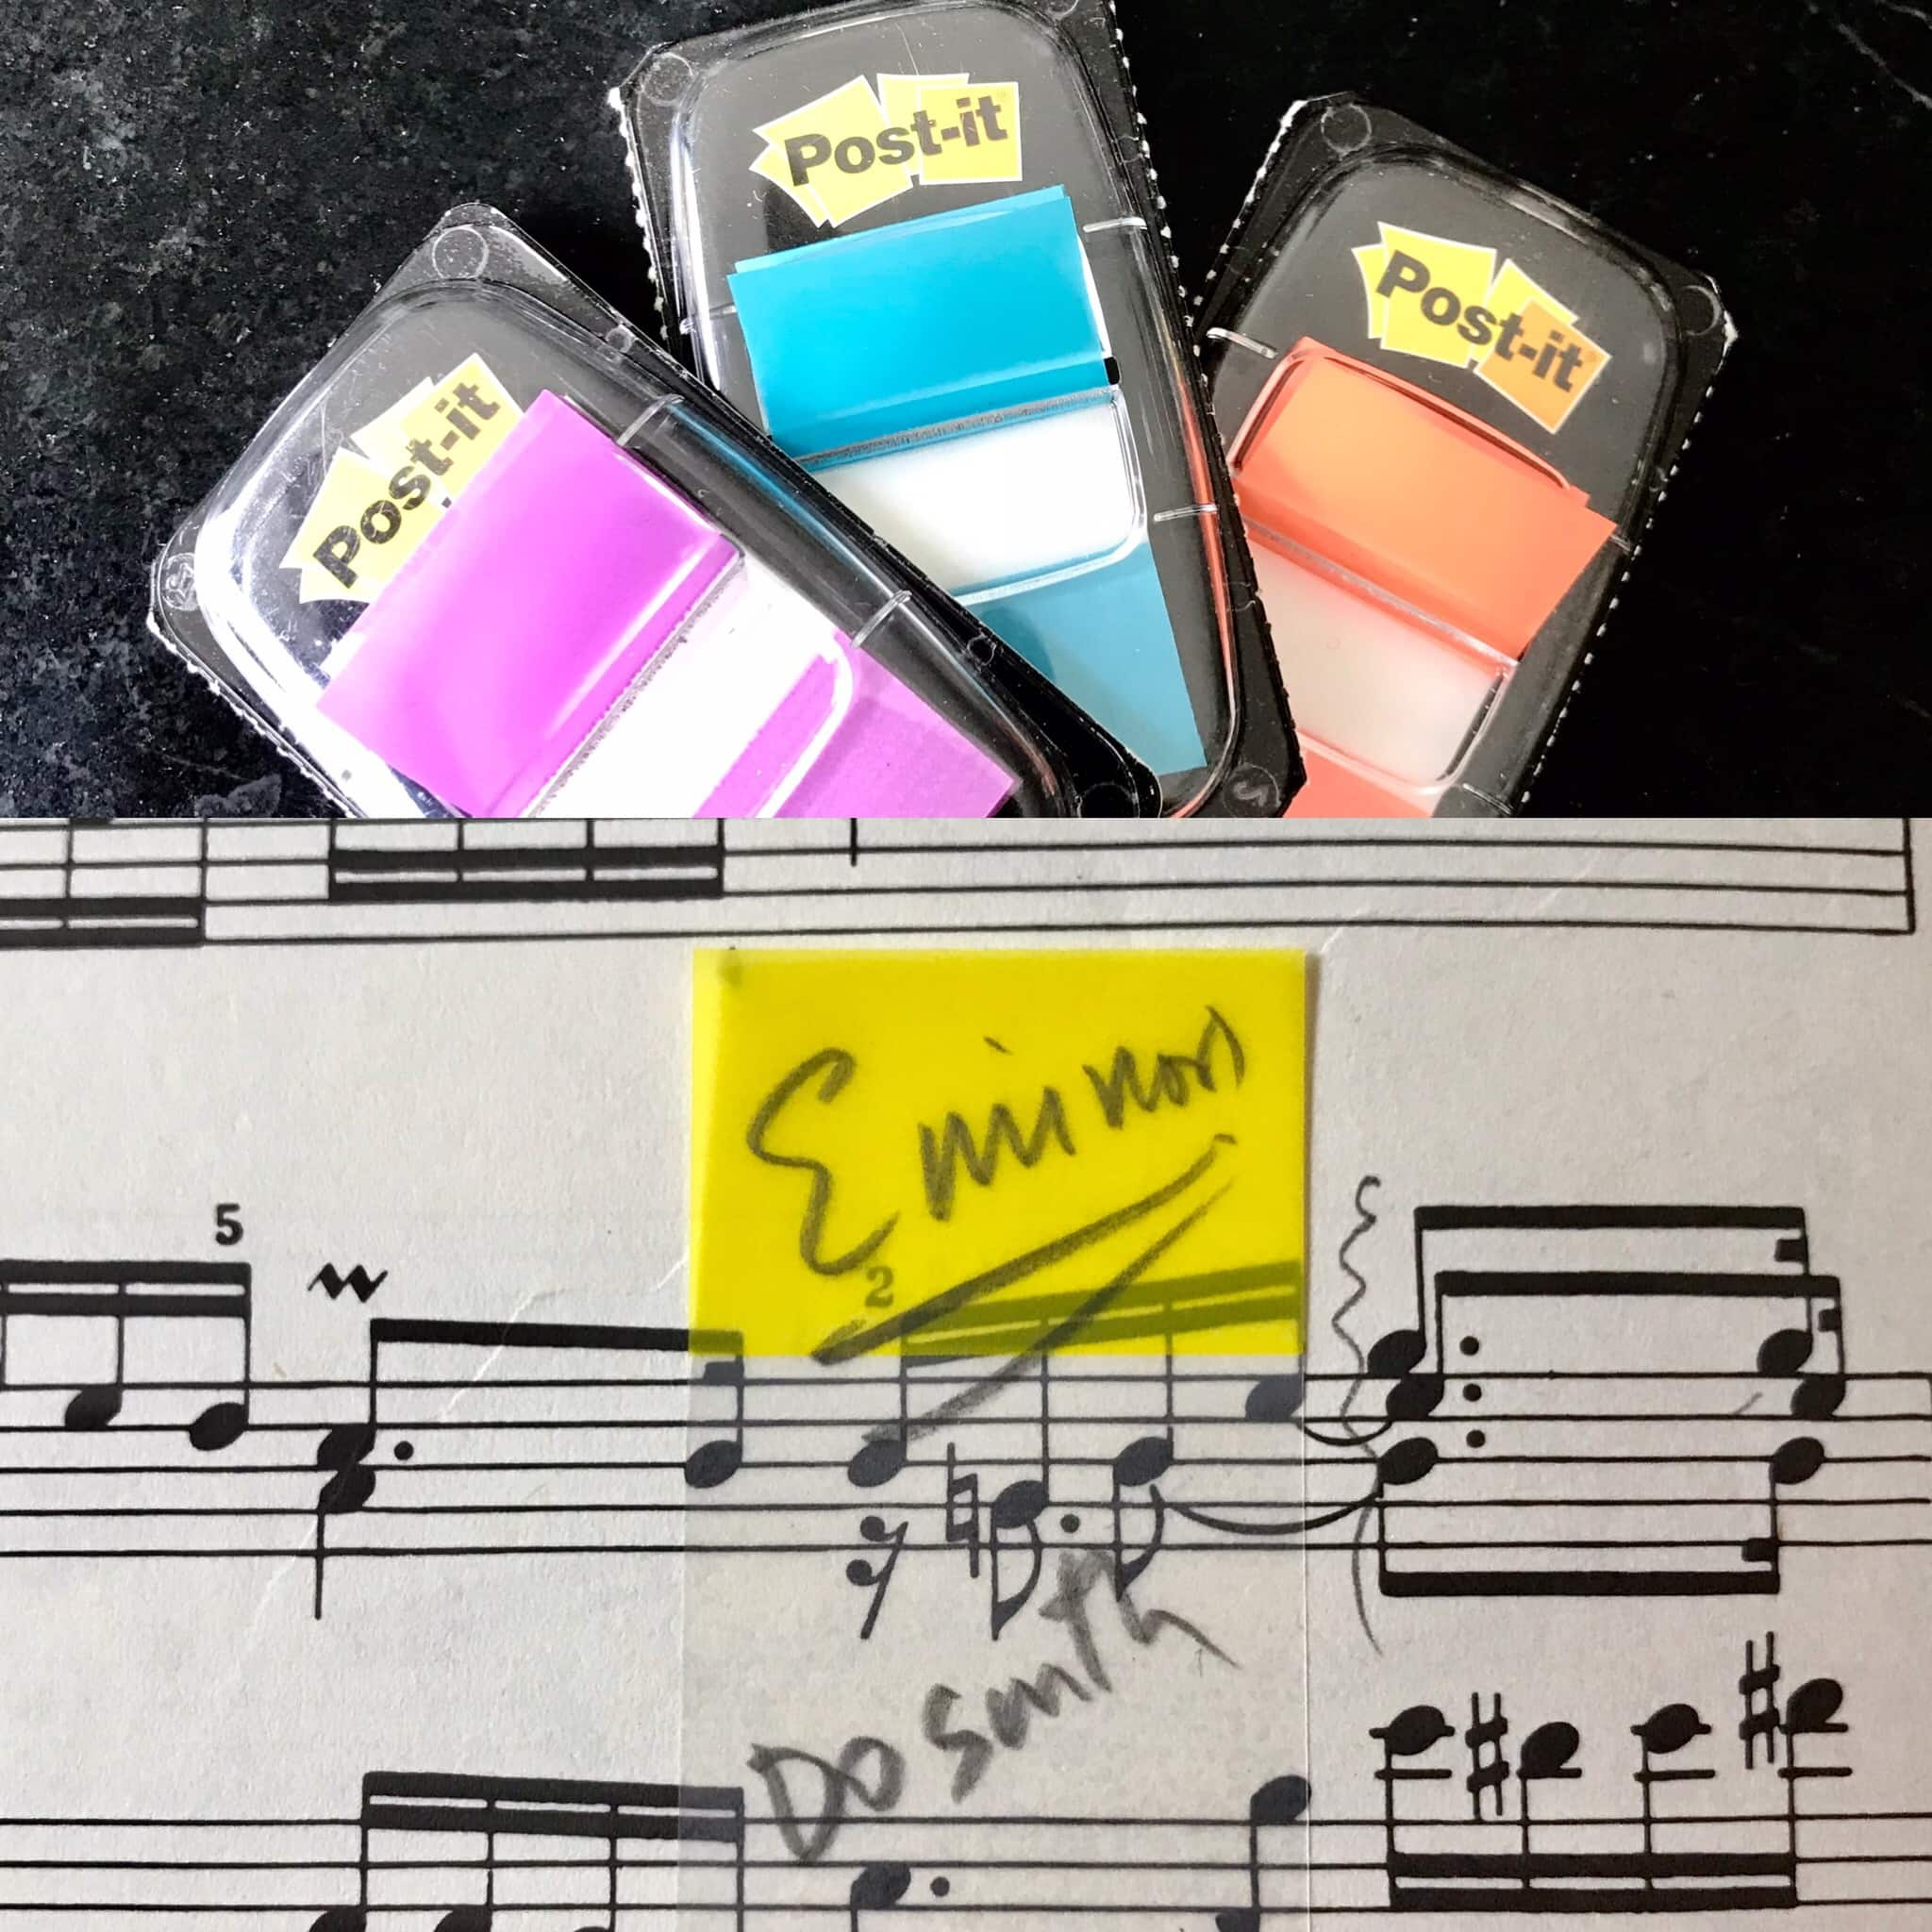 Score image with post-it notes